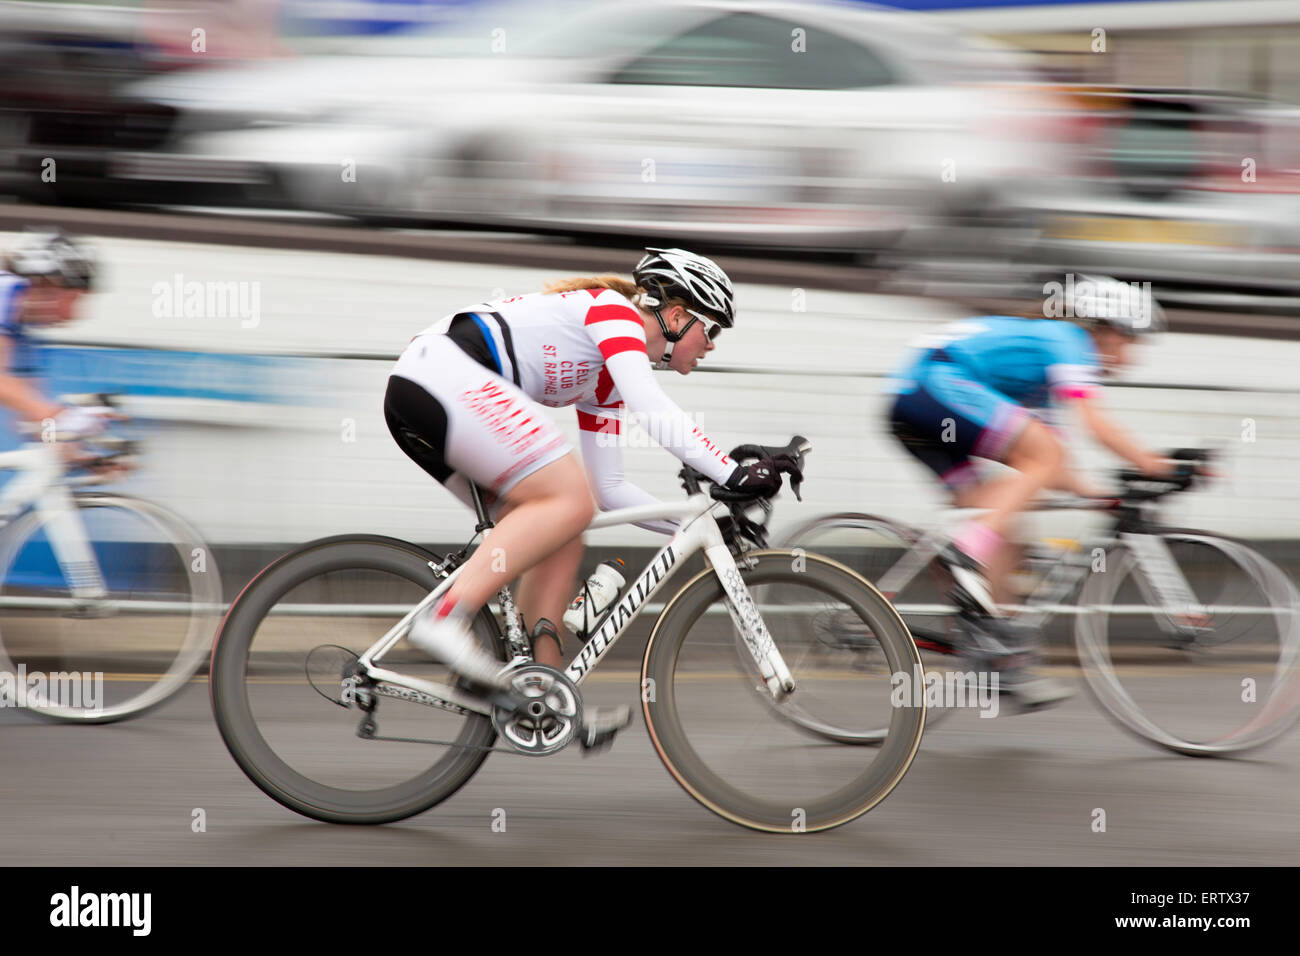 Motion blur at a cycle road race, England, UK Stock Photo